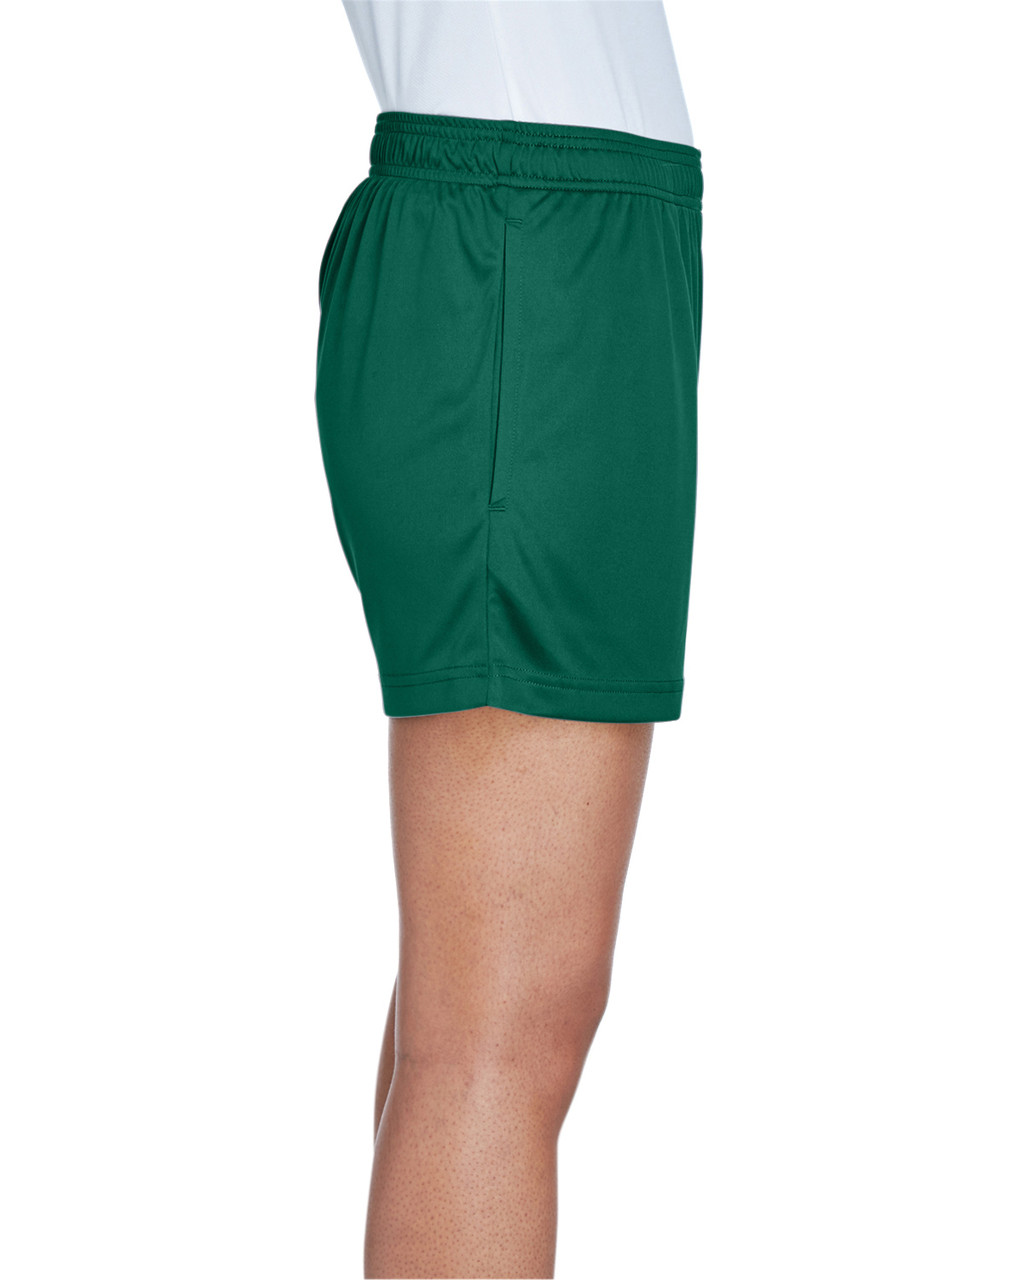 Sport Forest - Side, TT11SHW Team 365 Ladies' Zone Performance Short | T-shirt.ca